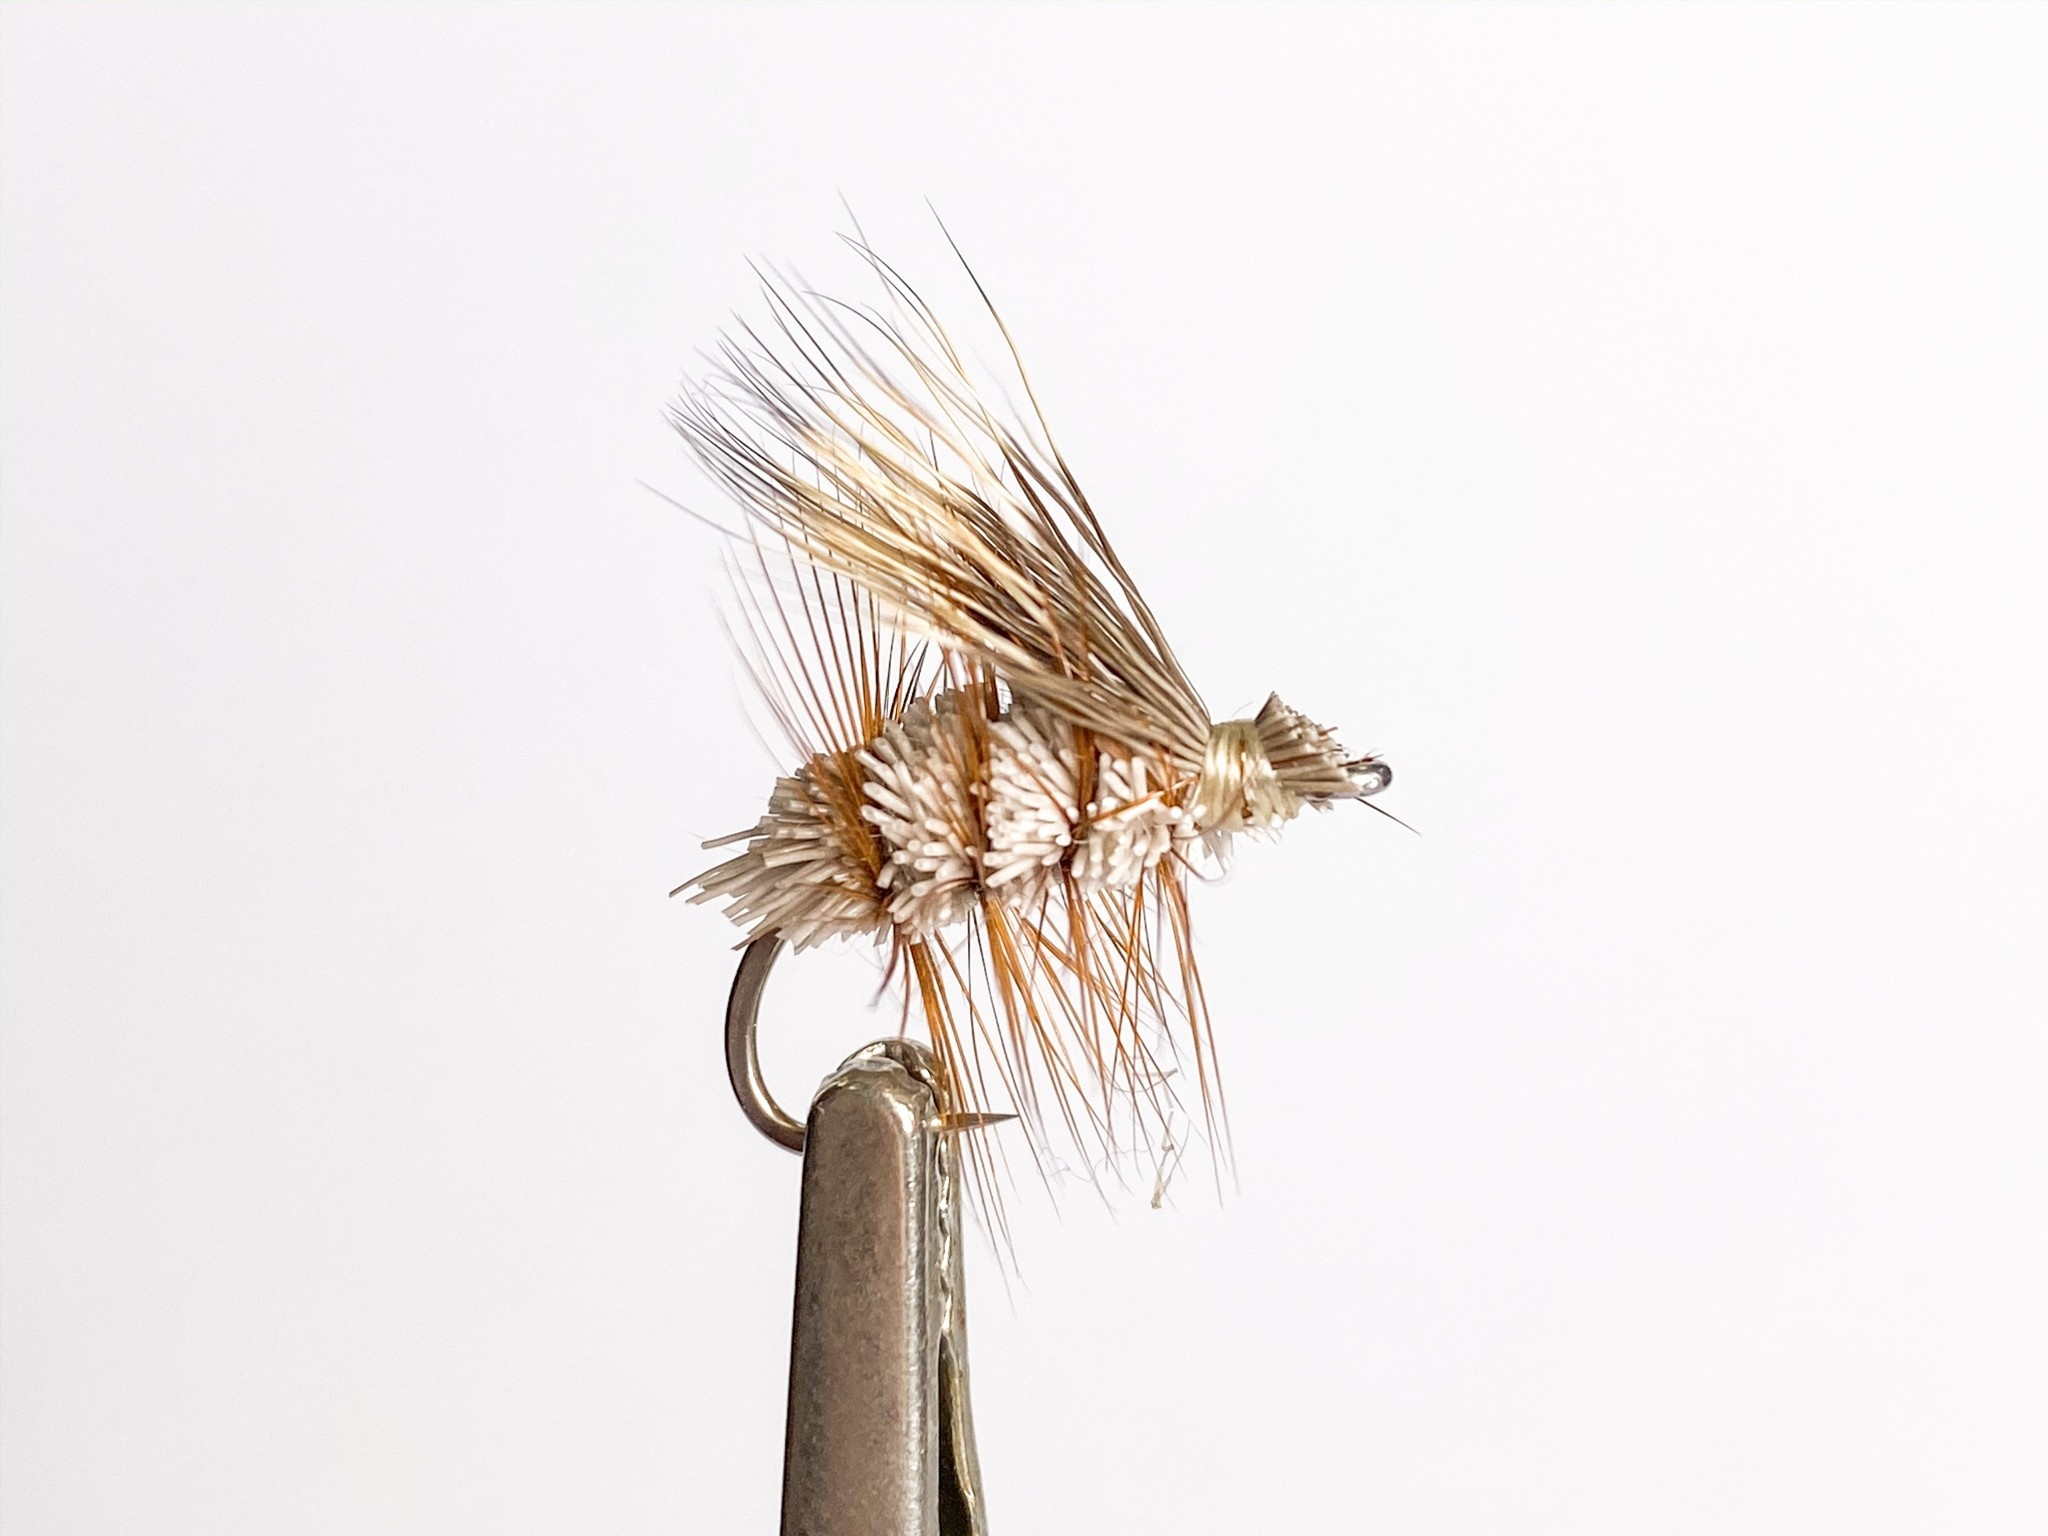 Gig Harbor Fly Shop Cutthroat Candy size 8